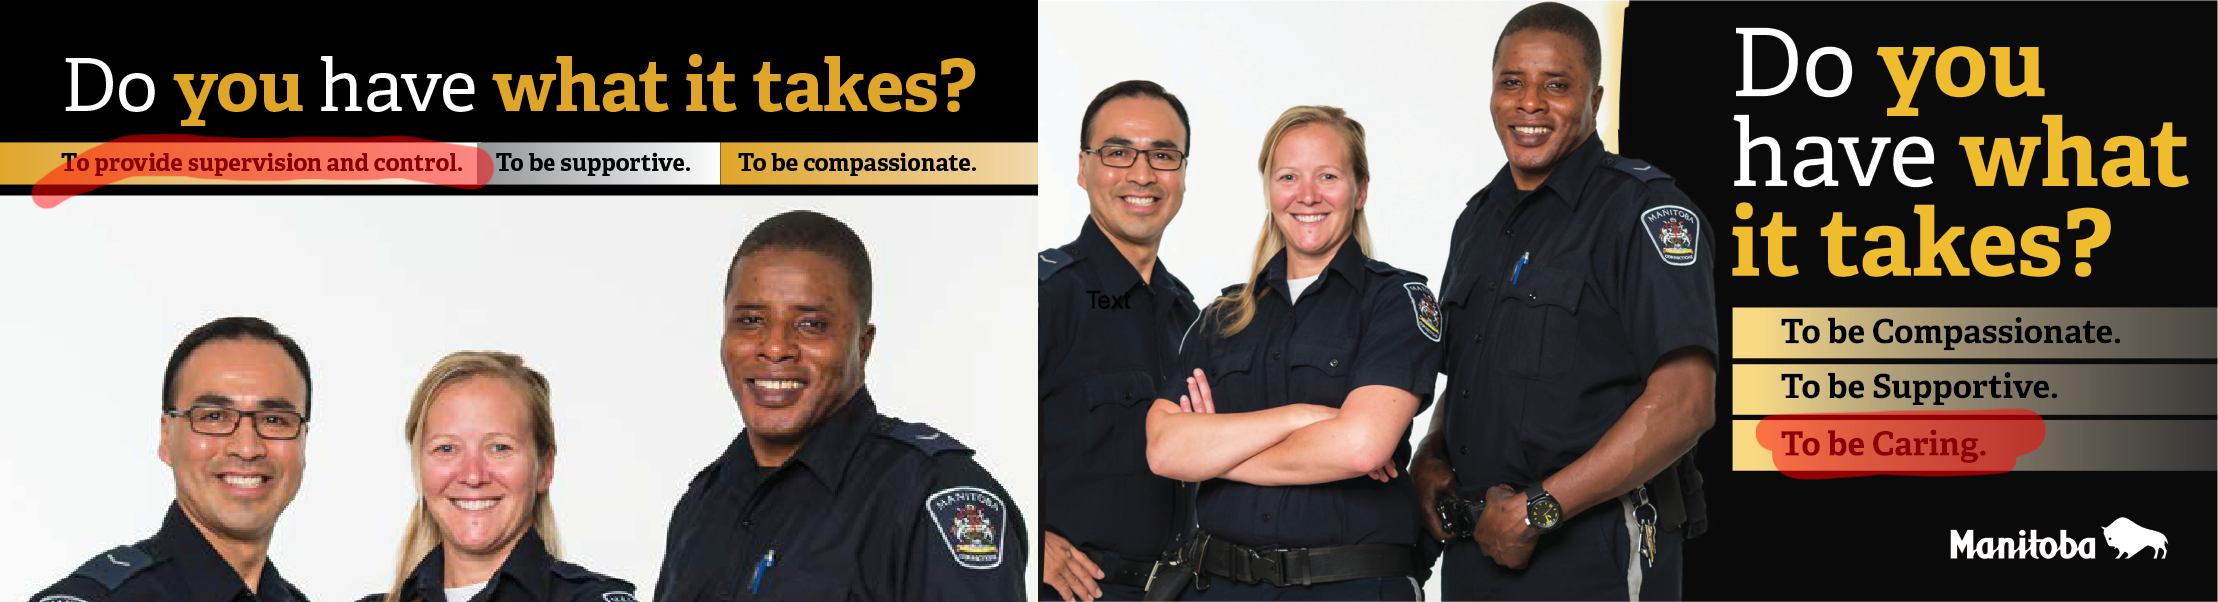 "Two similar recruitment images with corrections officers and the headlines ""Do you have what it takes?"" One has subtitles of ""To provide supervision and control"", ""To be supportive"", ""To be compassionate"". The other replaces supervision and control with ""To be caring""."